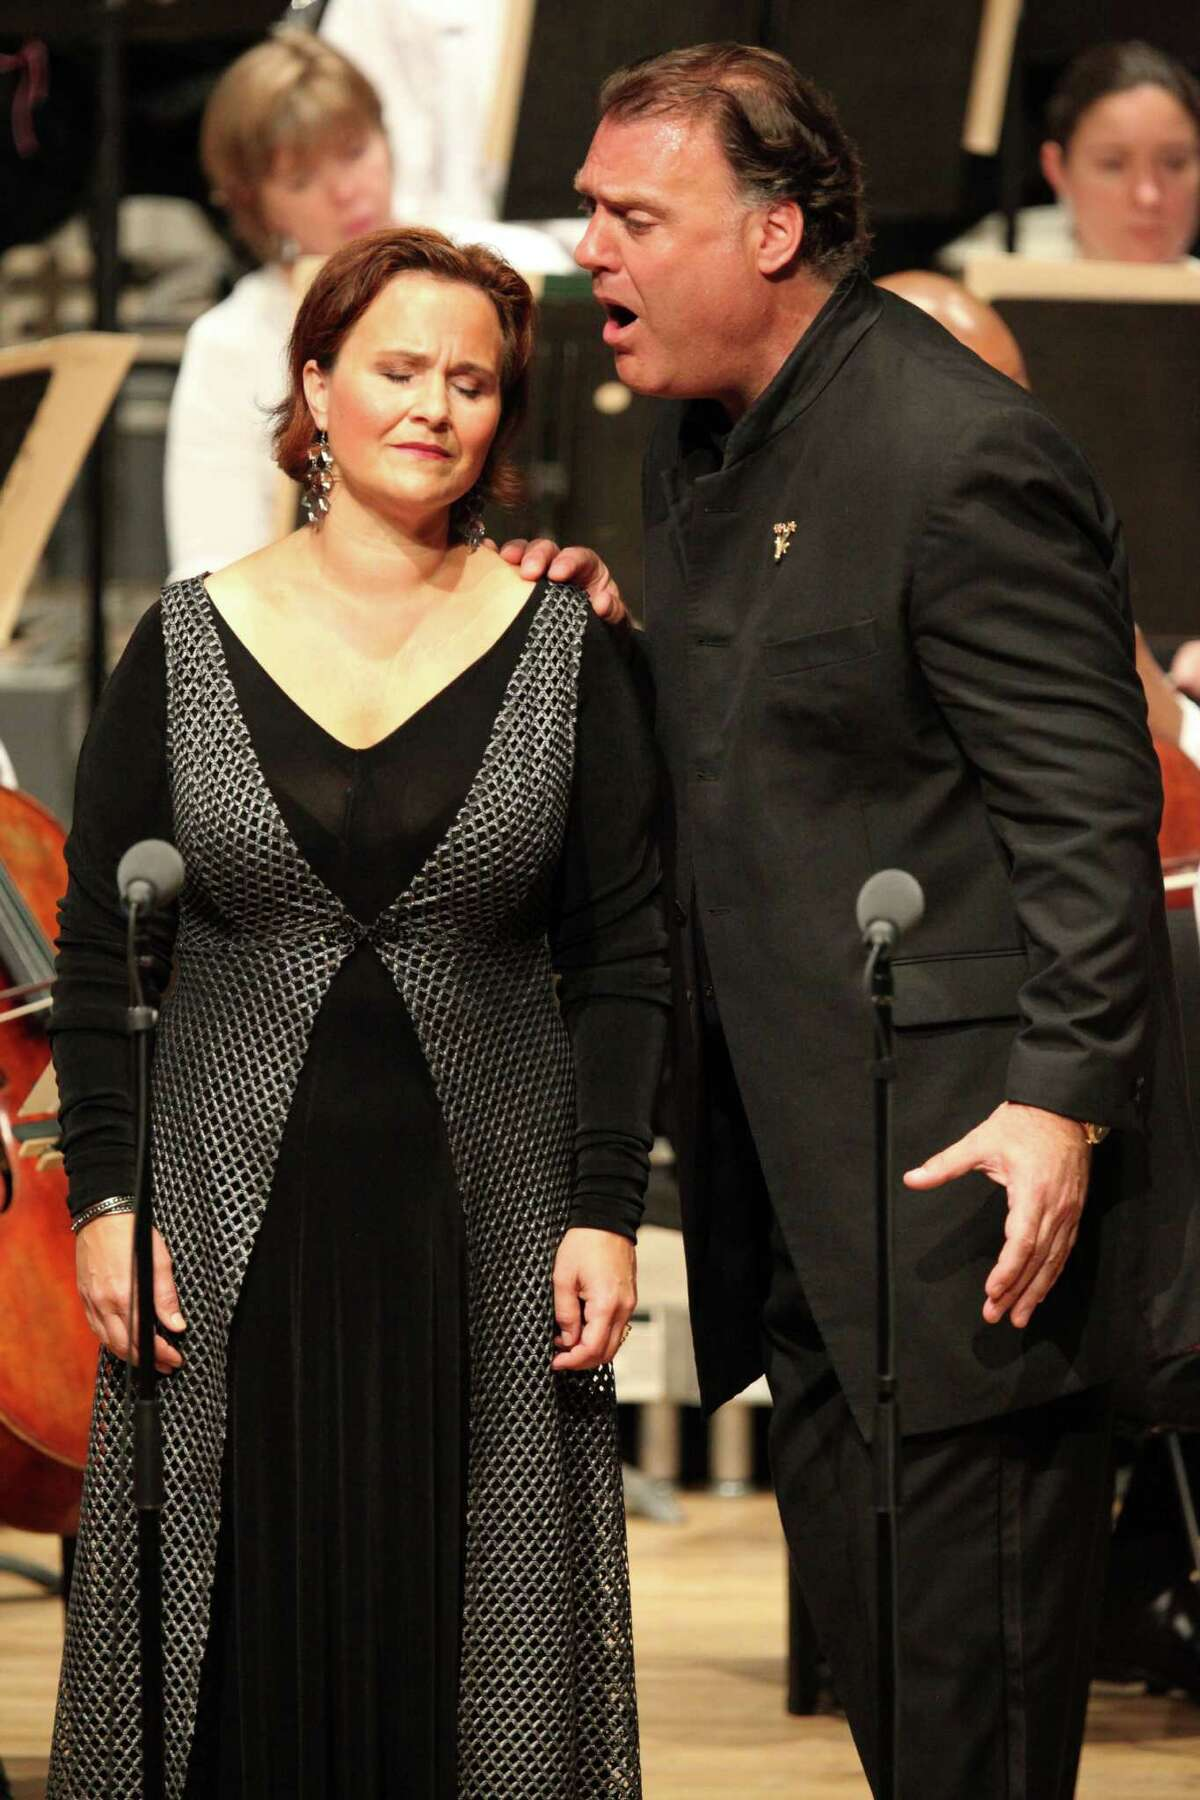 Soloists Bryn Terfel and Katarina Dalayman in the performance of Wagner's Die Walkure, Act 3 (Hilary Scott)